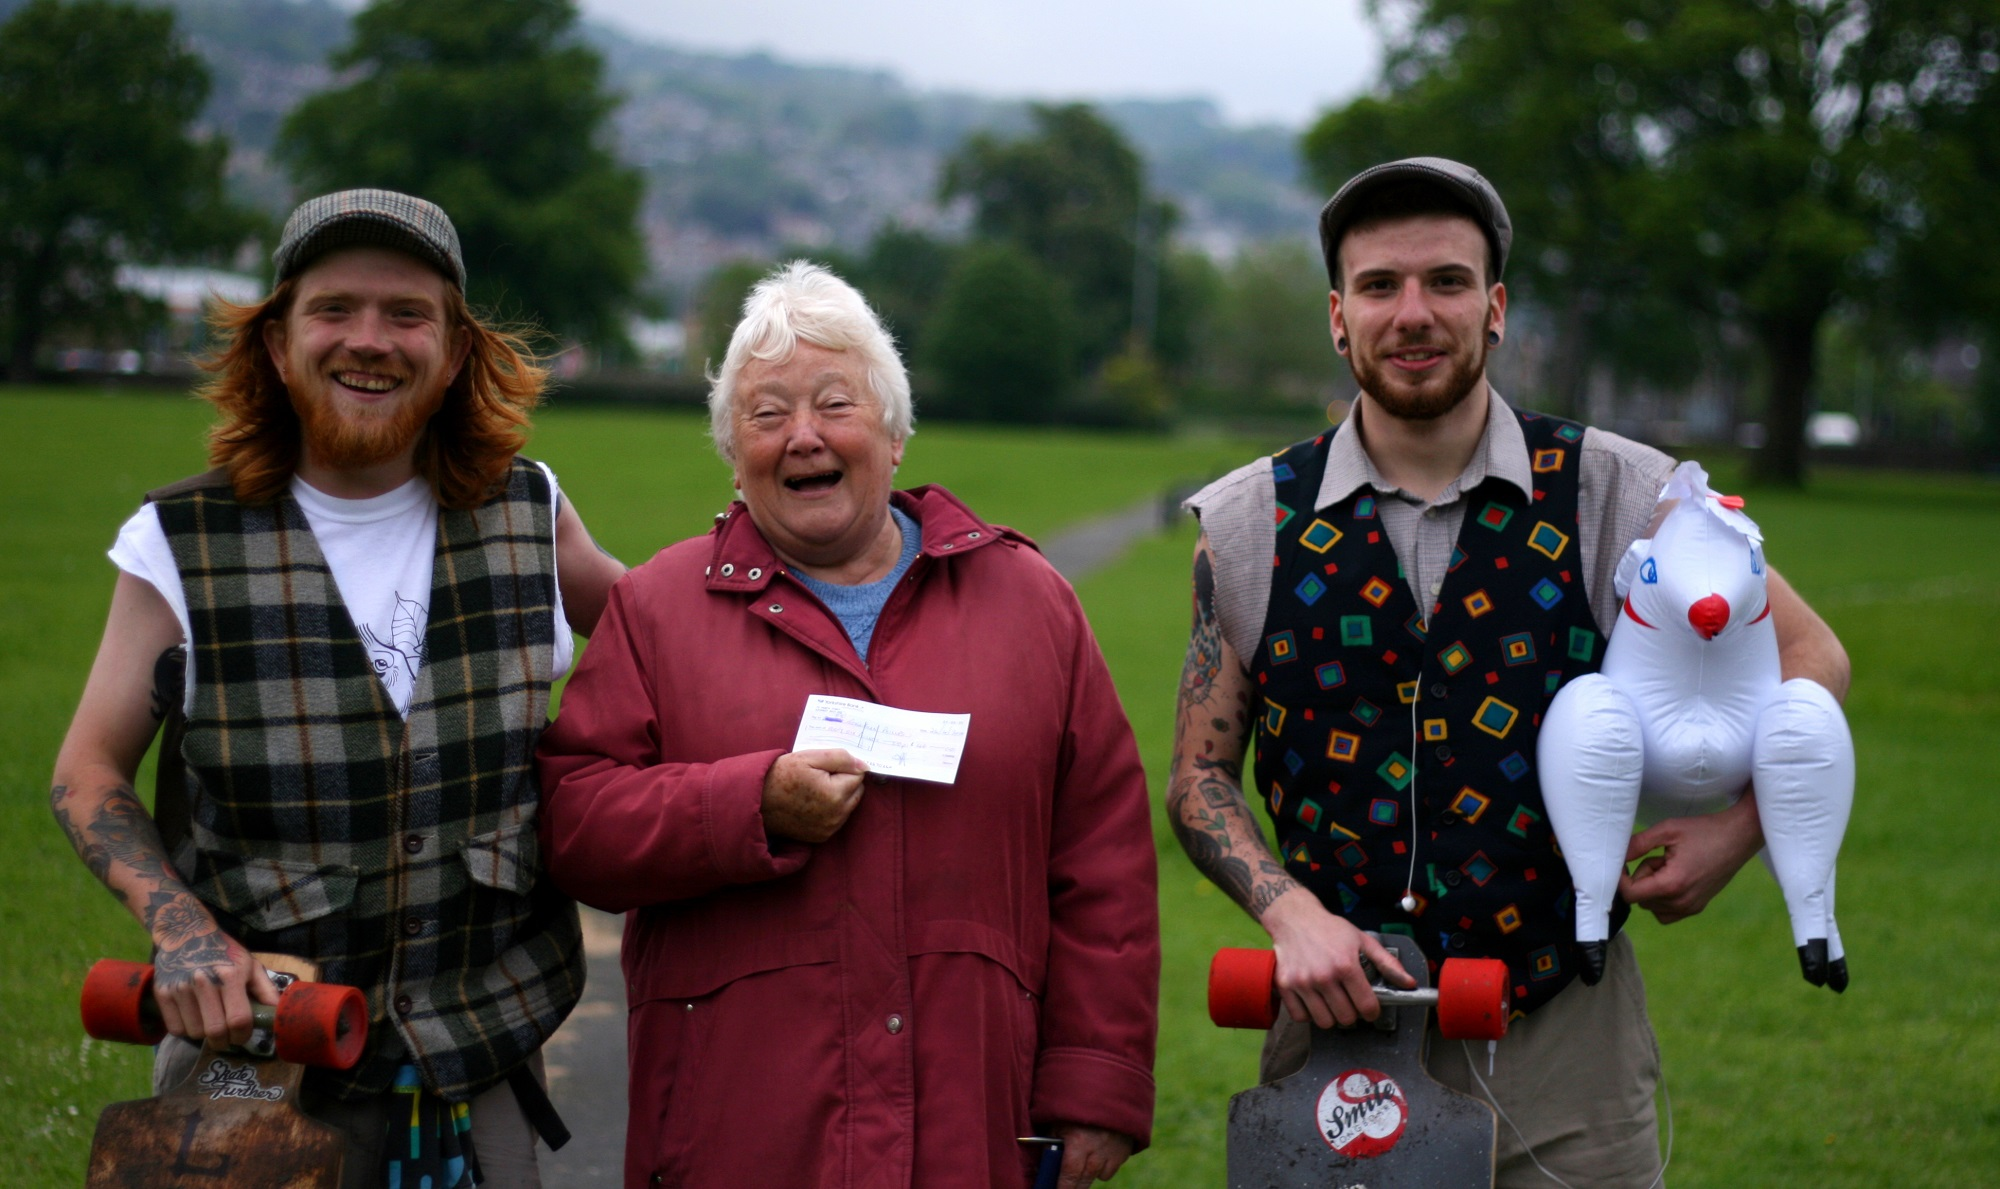 Johnny Phillips, left, and Michael Laidler, right, receiving a cheque from Jean Harper, whom they met in Victoria Park during their charity skateboarding challenge to raise funds for the Children's Heart Federa